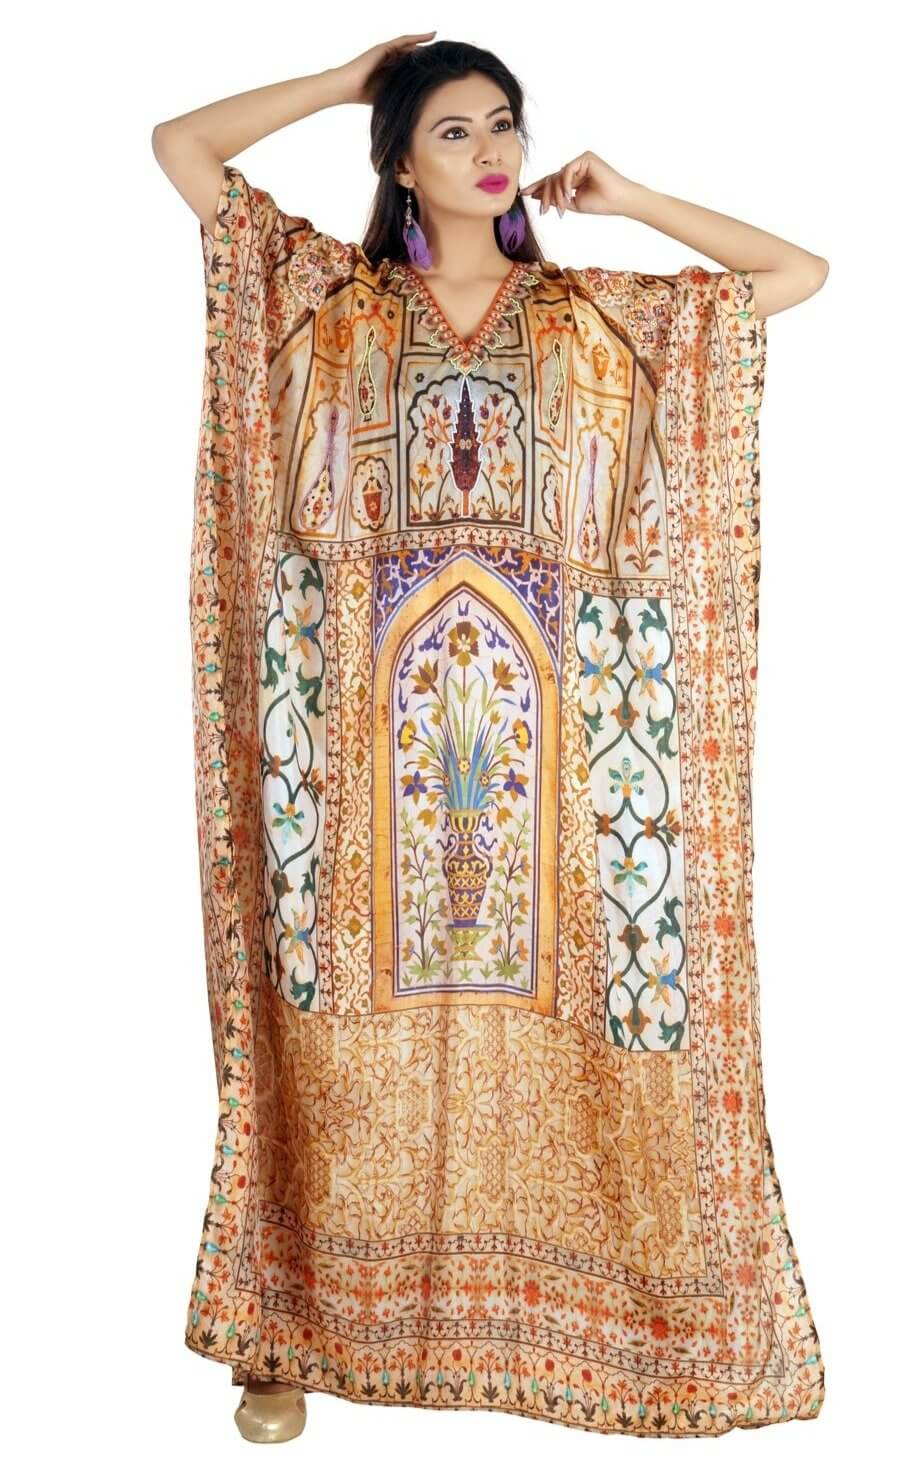 Abstract floral print with lovely embellished neckline beads over it - Silk kaftan